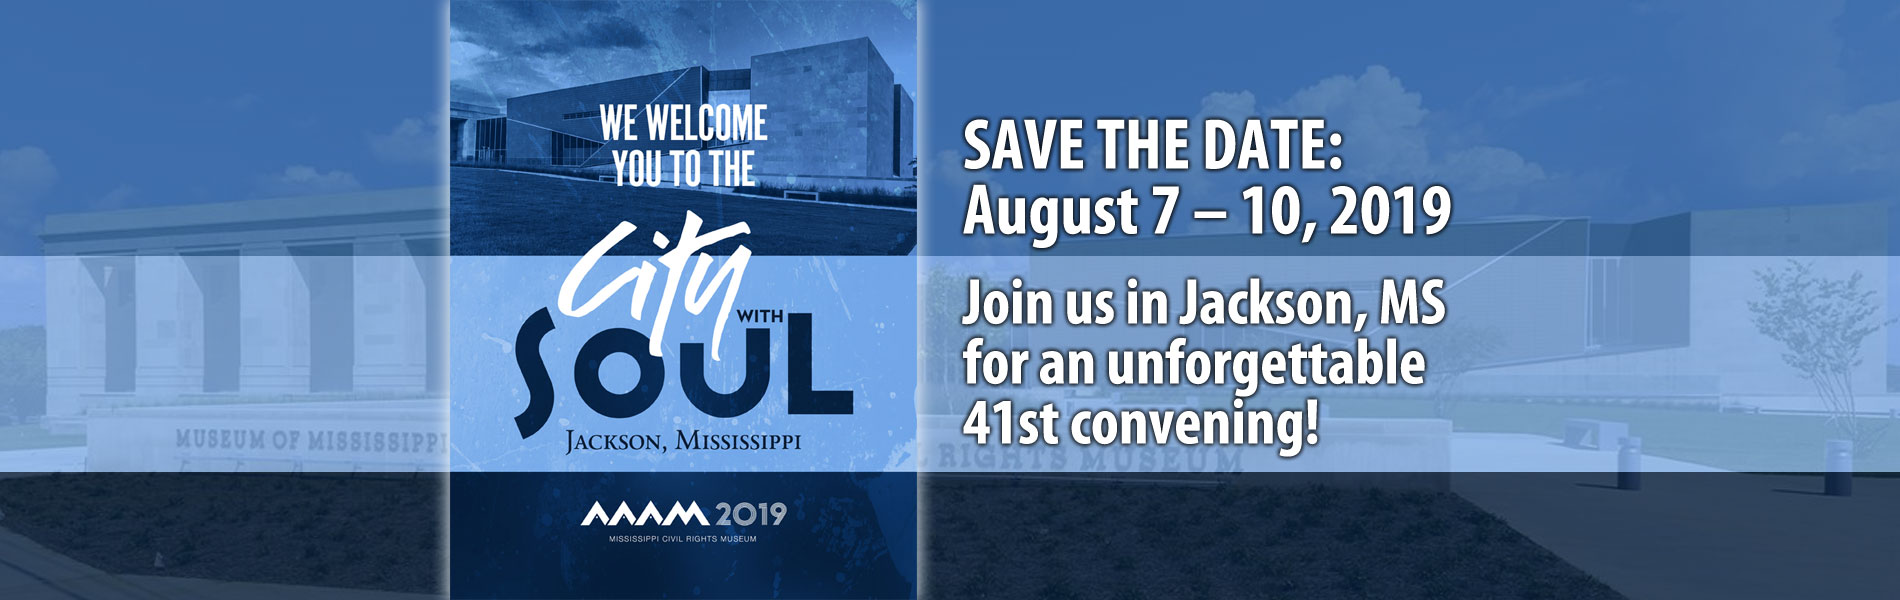 2019 AAAM Conference save the date